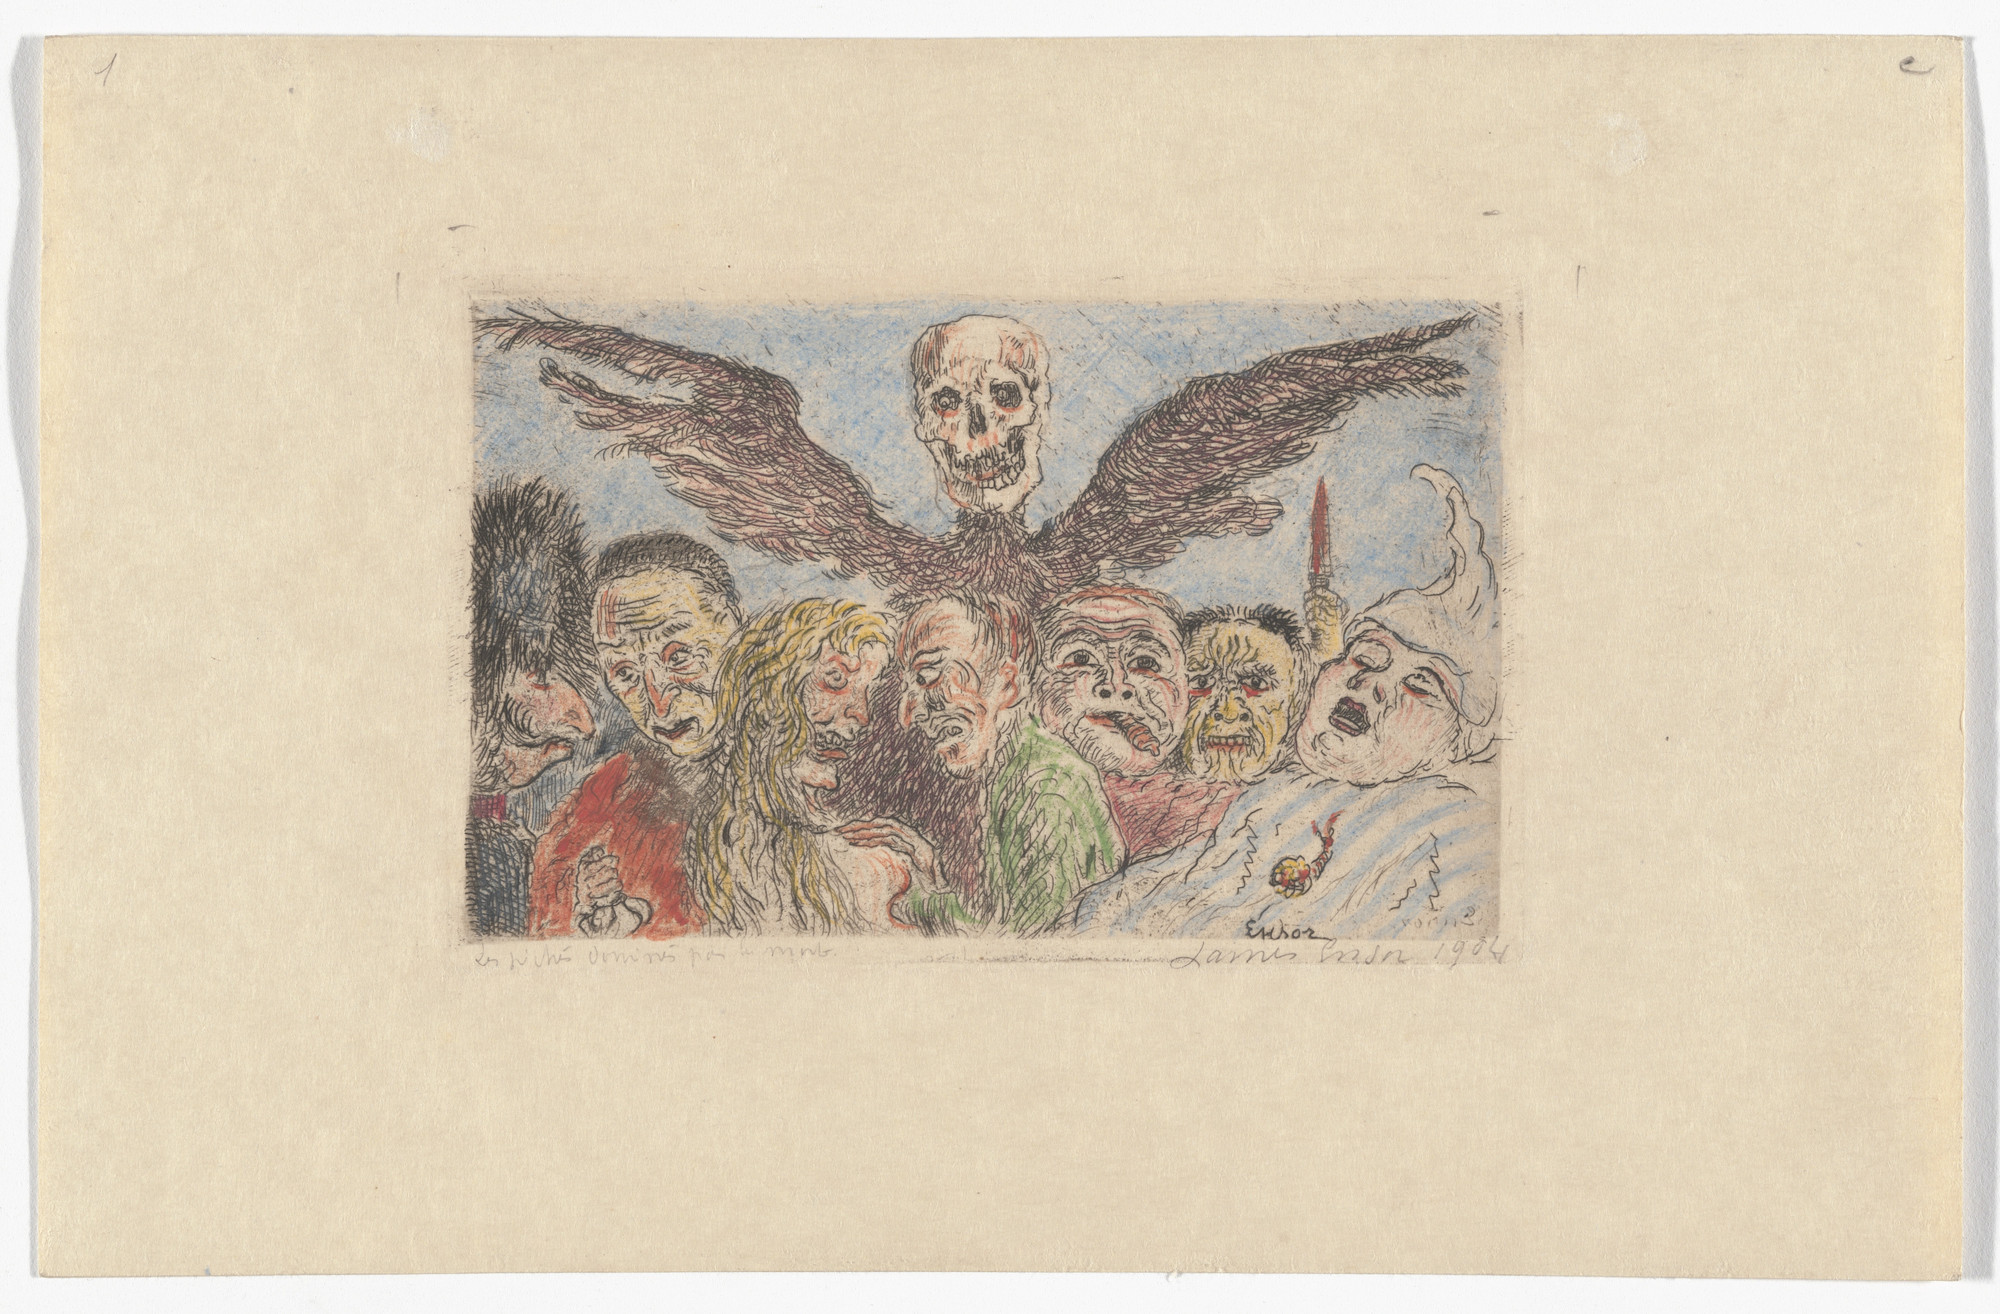 James Ensor. The Deadly Sins (Les Péchés capitaux). 1888–1904, published 1904